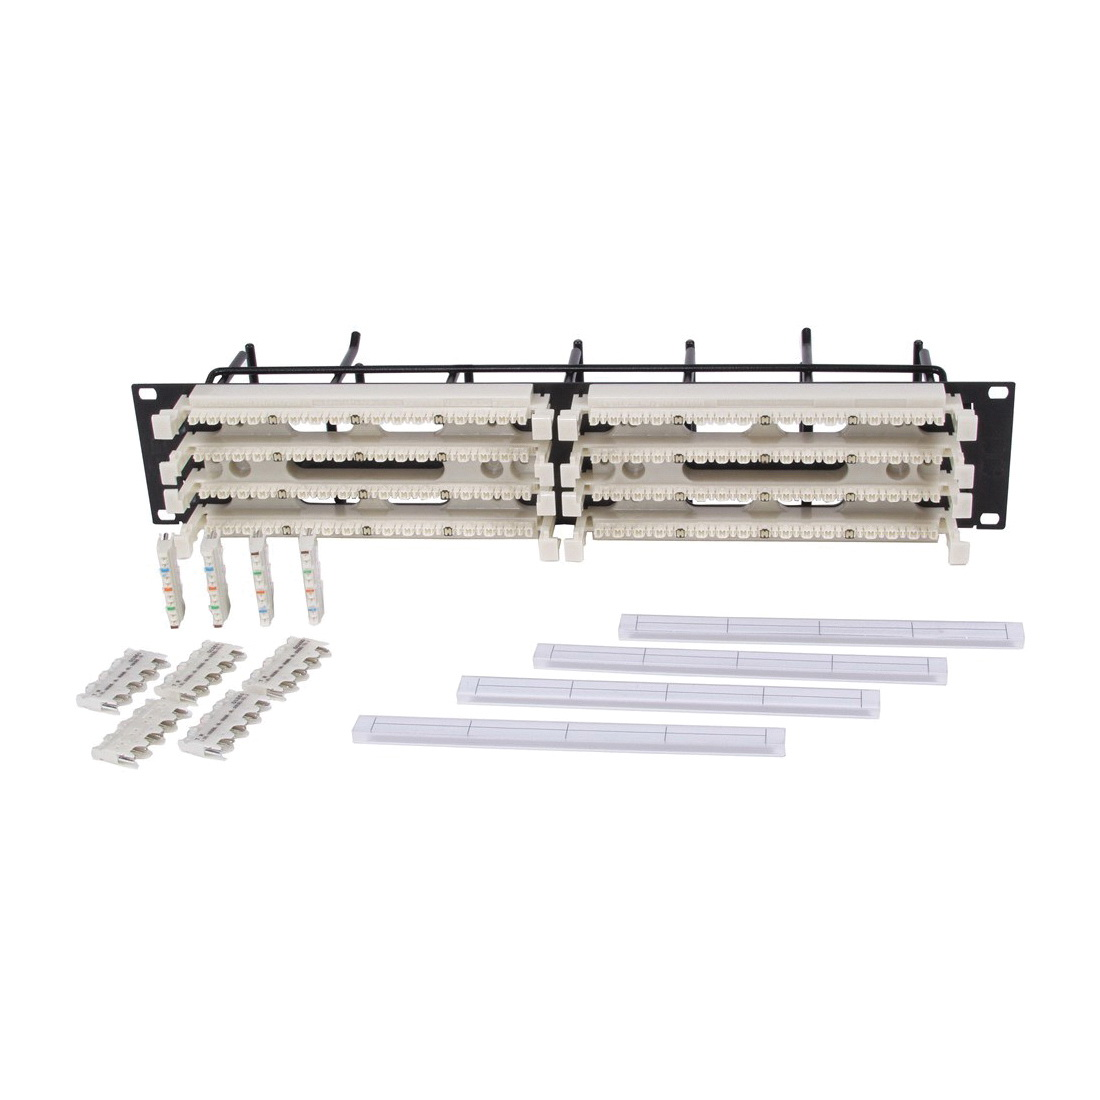 Electric Trough Wiring Definition Hubbell Premise Rack Kit No 1100x1100